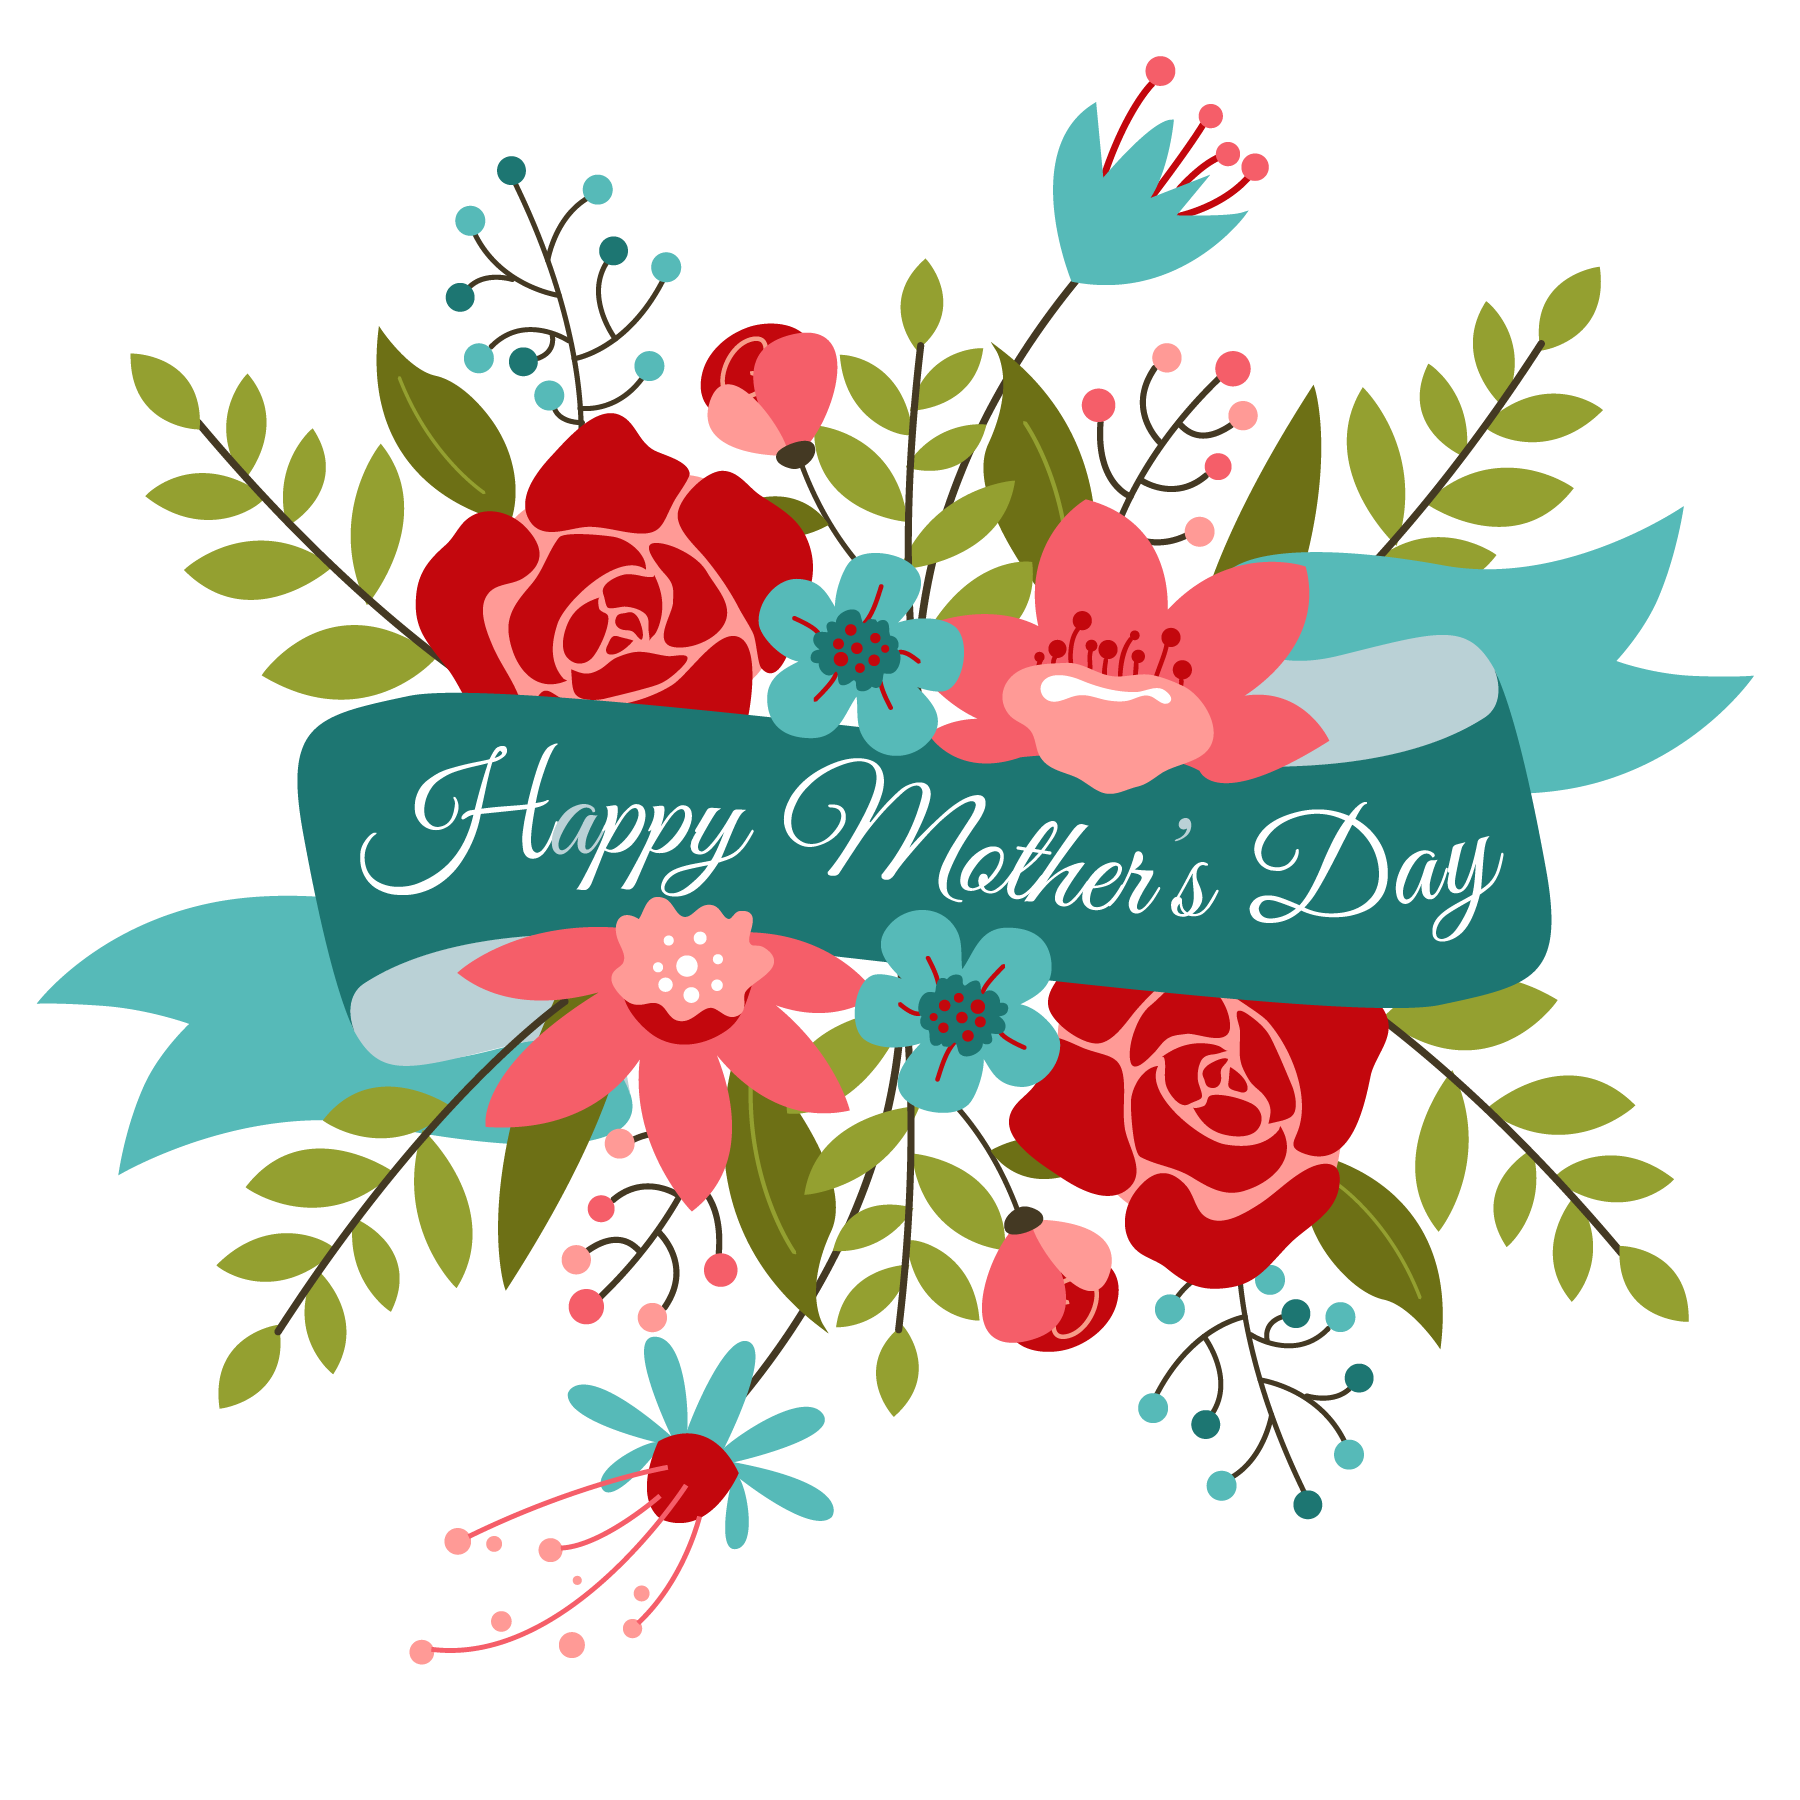 Heart clipart mothers day. Free png image